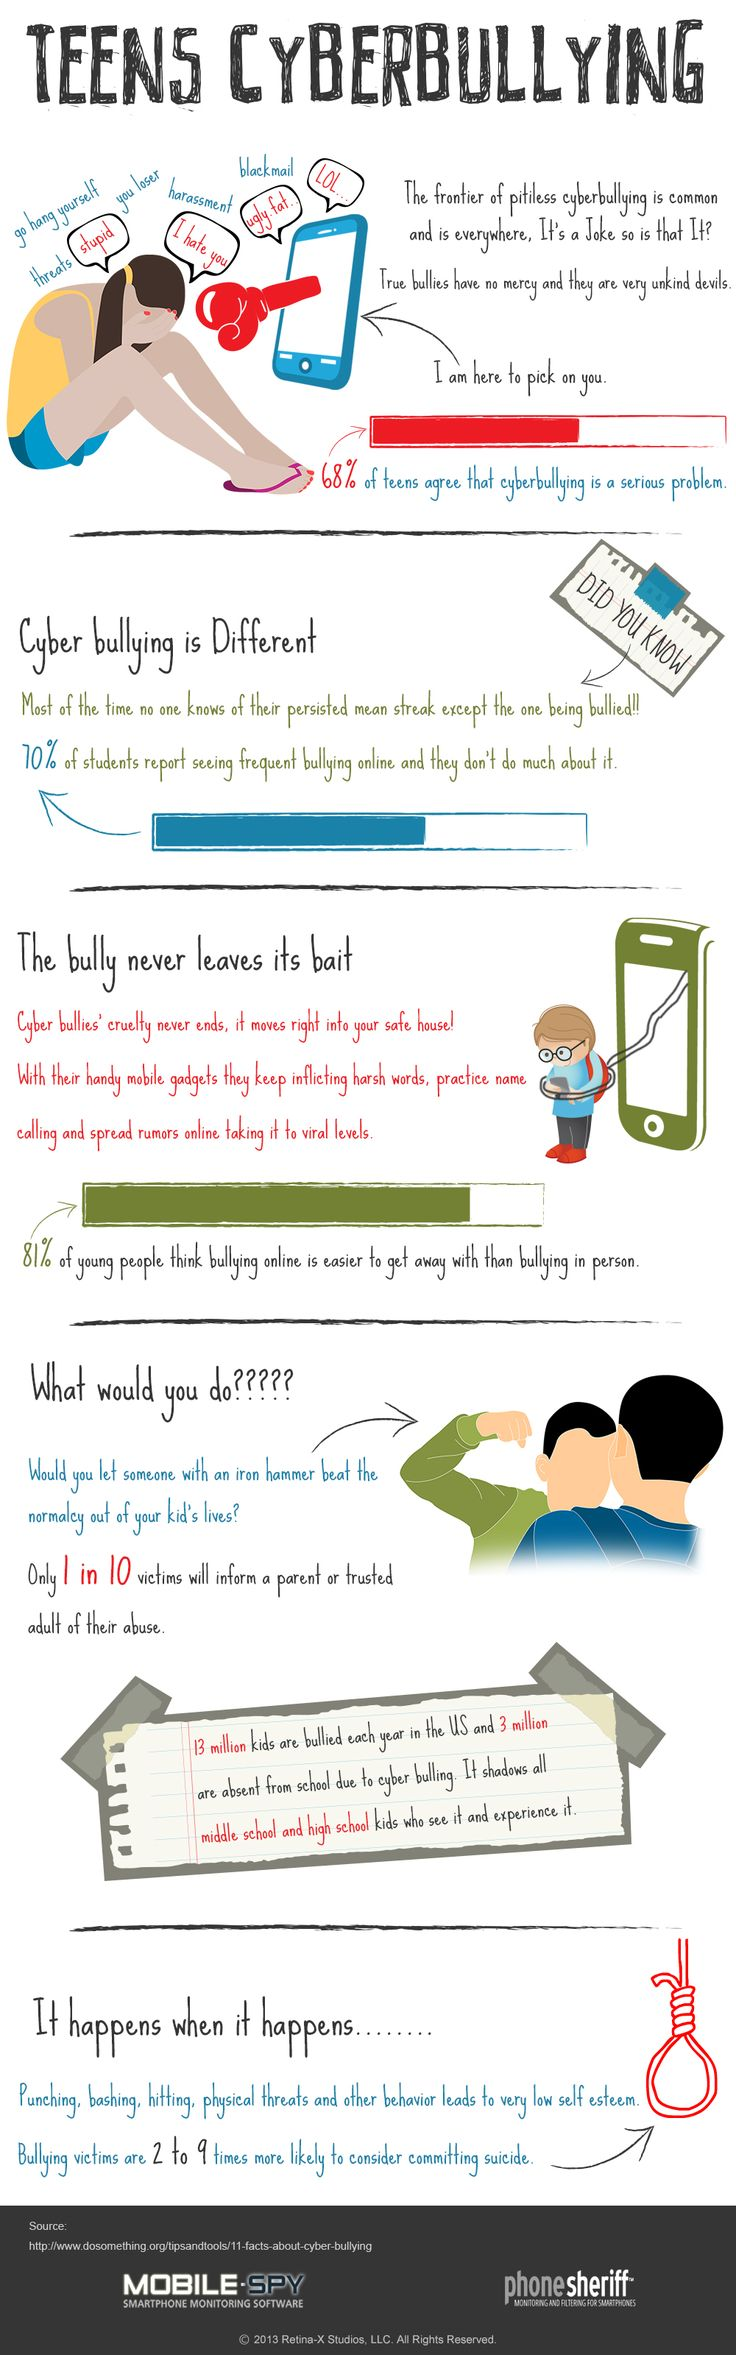 Worksheets Cyber Bullying Worksheets best 25 bullying statistics ideas on pinterest cyber ciberbullying y adolescentes infografia infographic internet bullyingteen